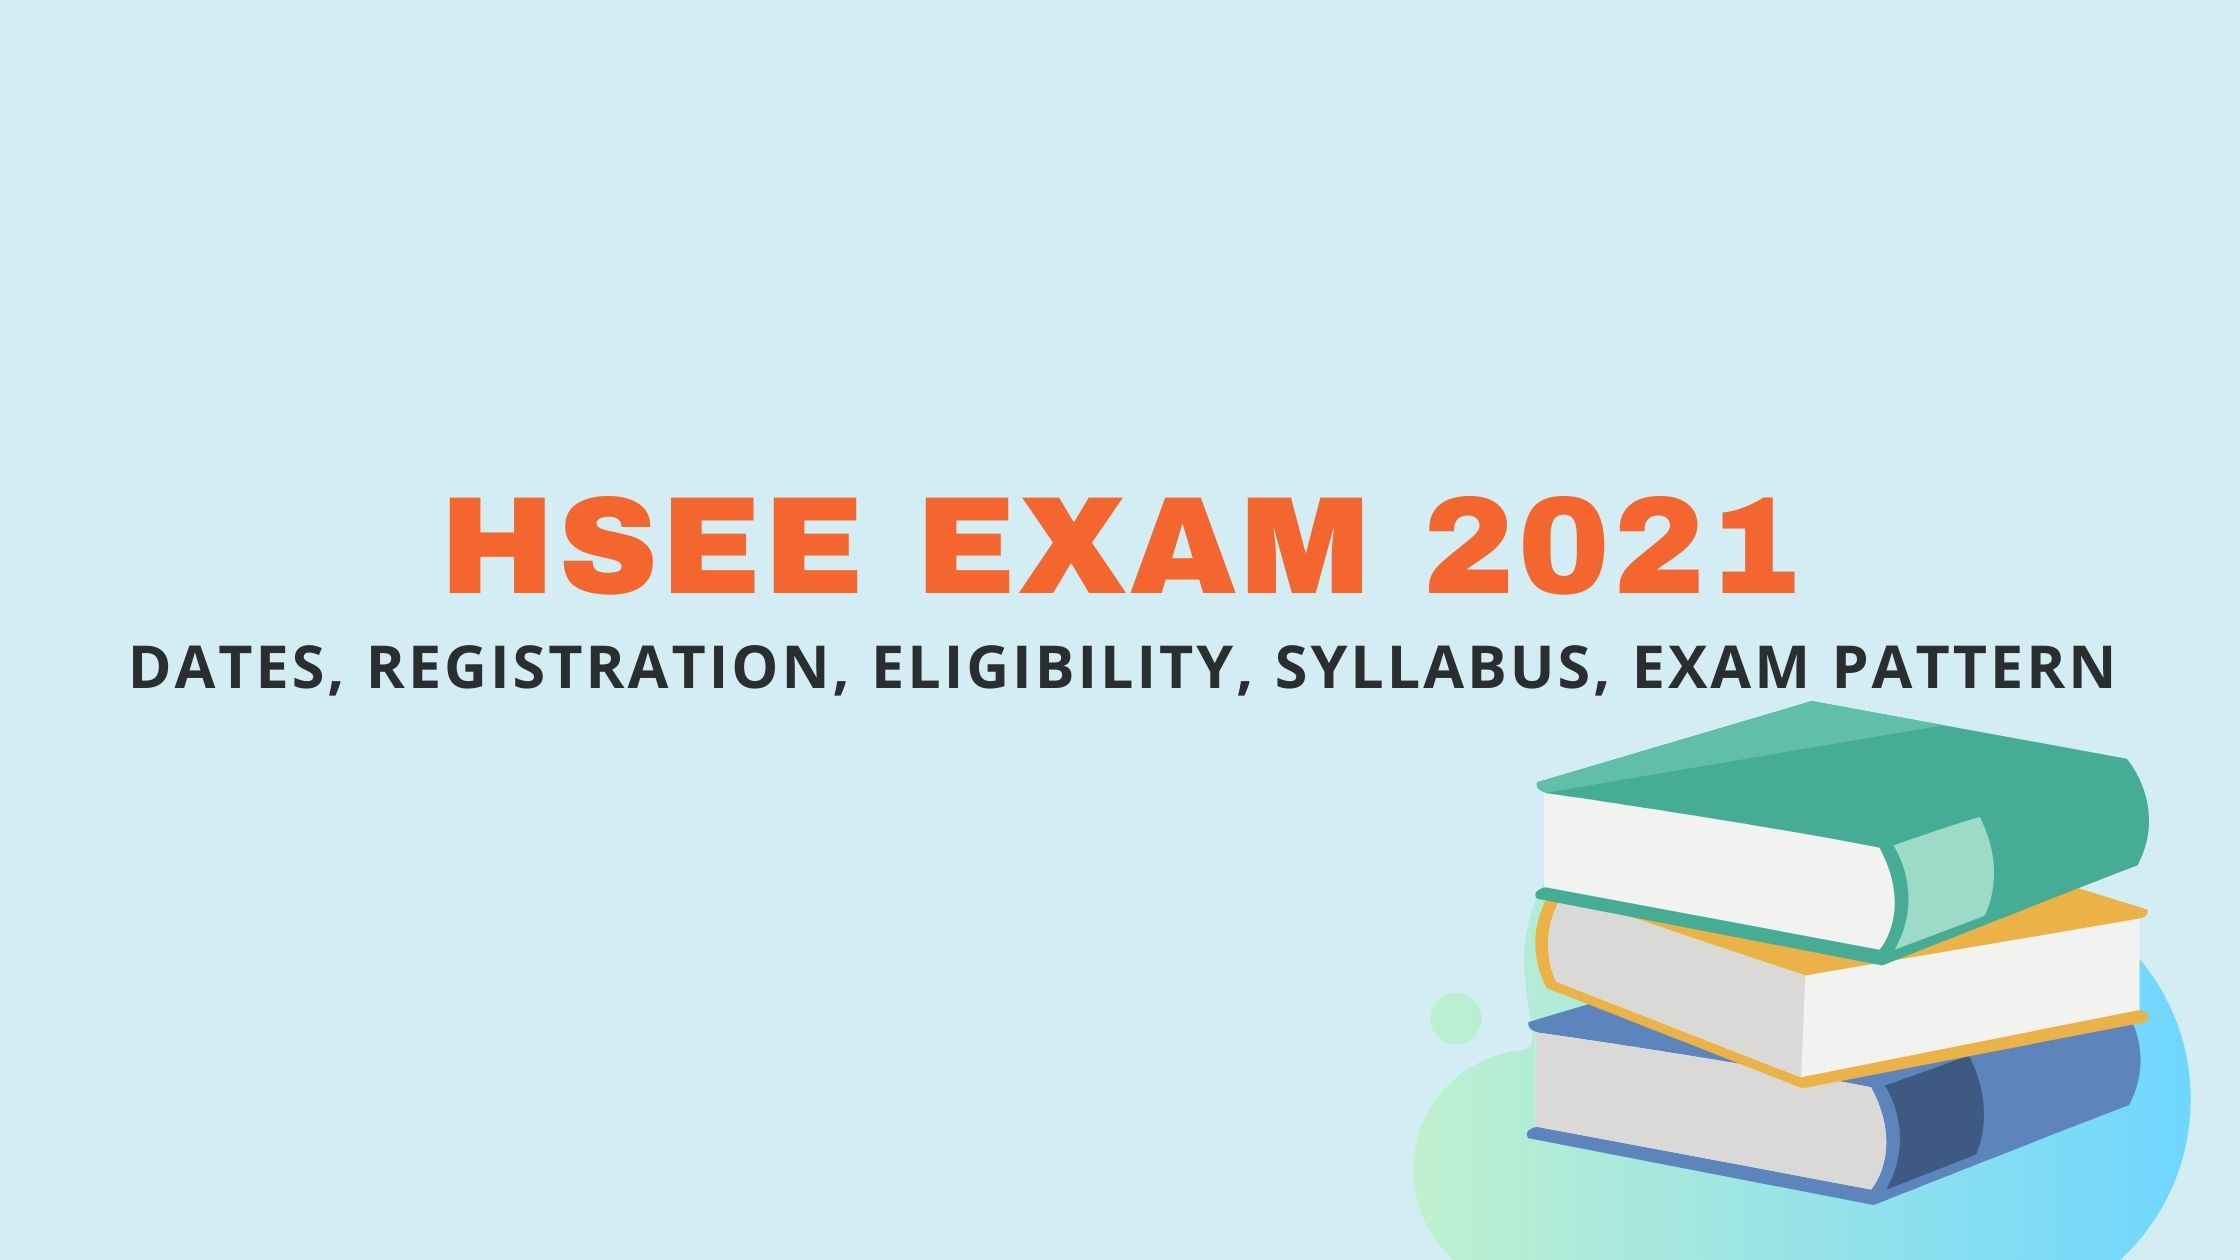 HSEE Exam 2021 – Dates, Registration, Eligibility, Syllabus, Exam Pattern